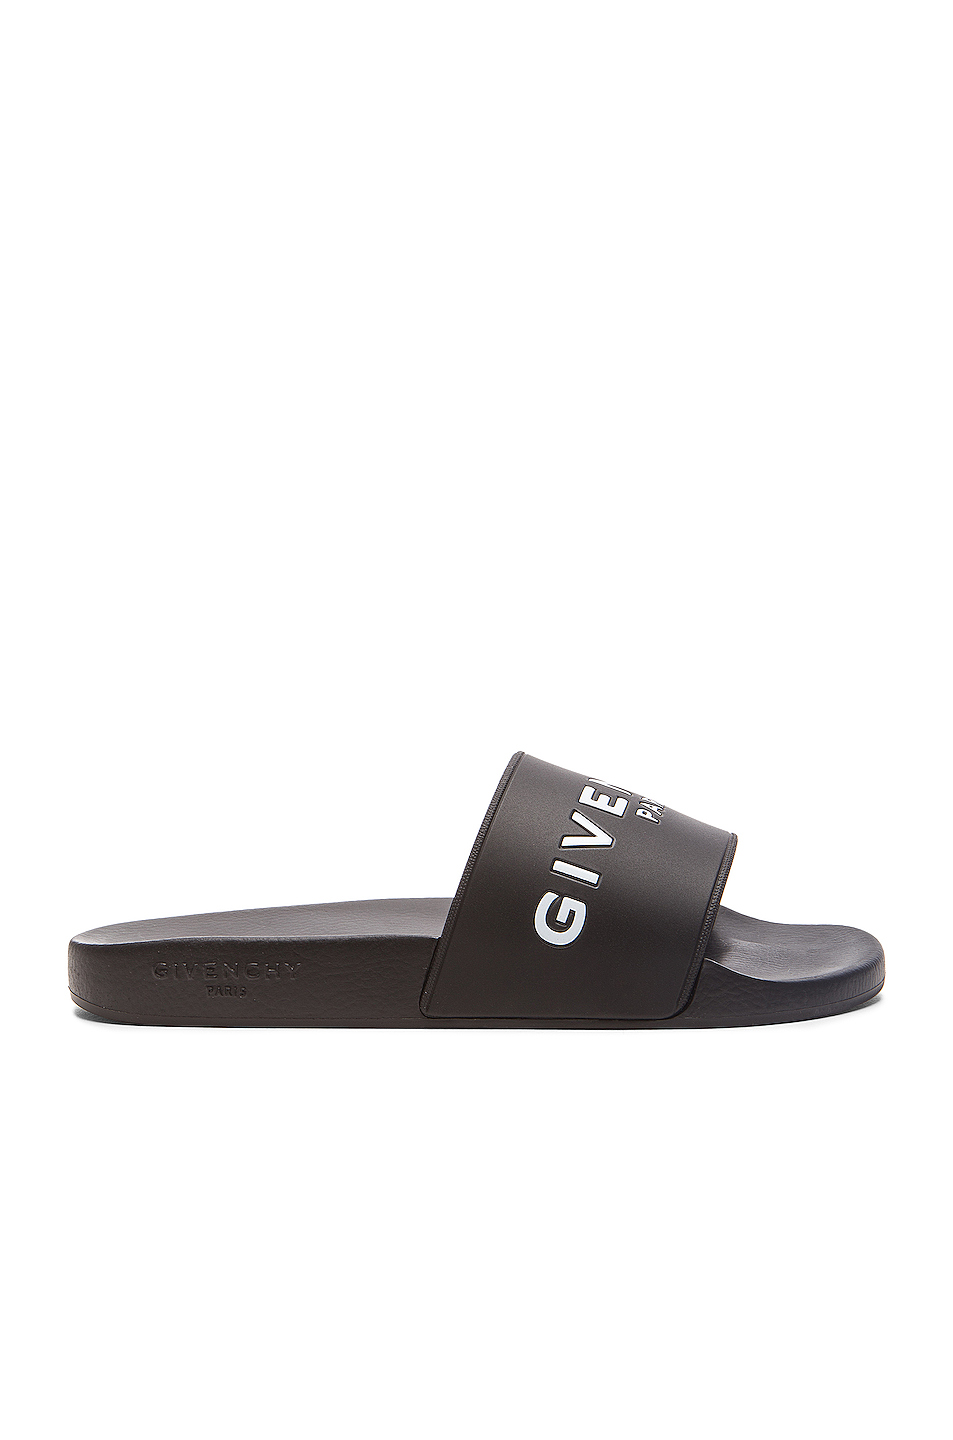 Photo of GIVENCHY Polyurethane Slide Sandals in Black - shop Givenchy menswear